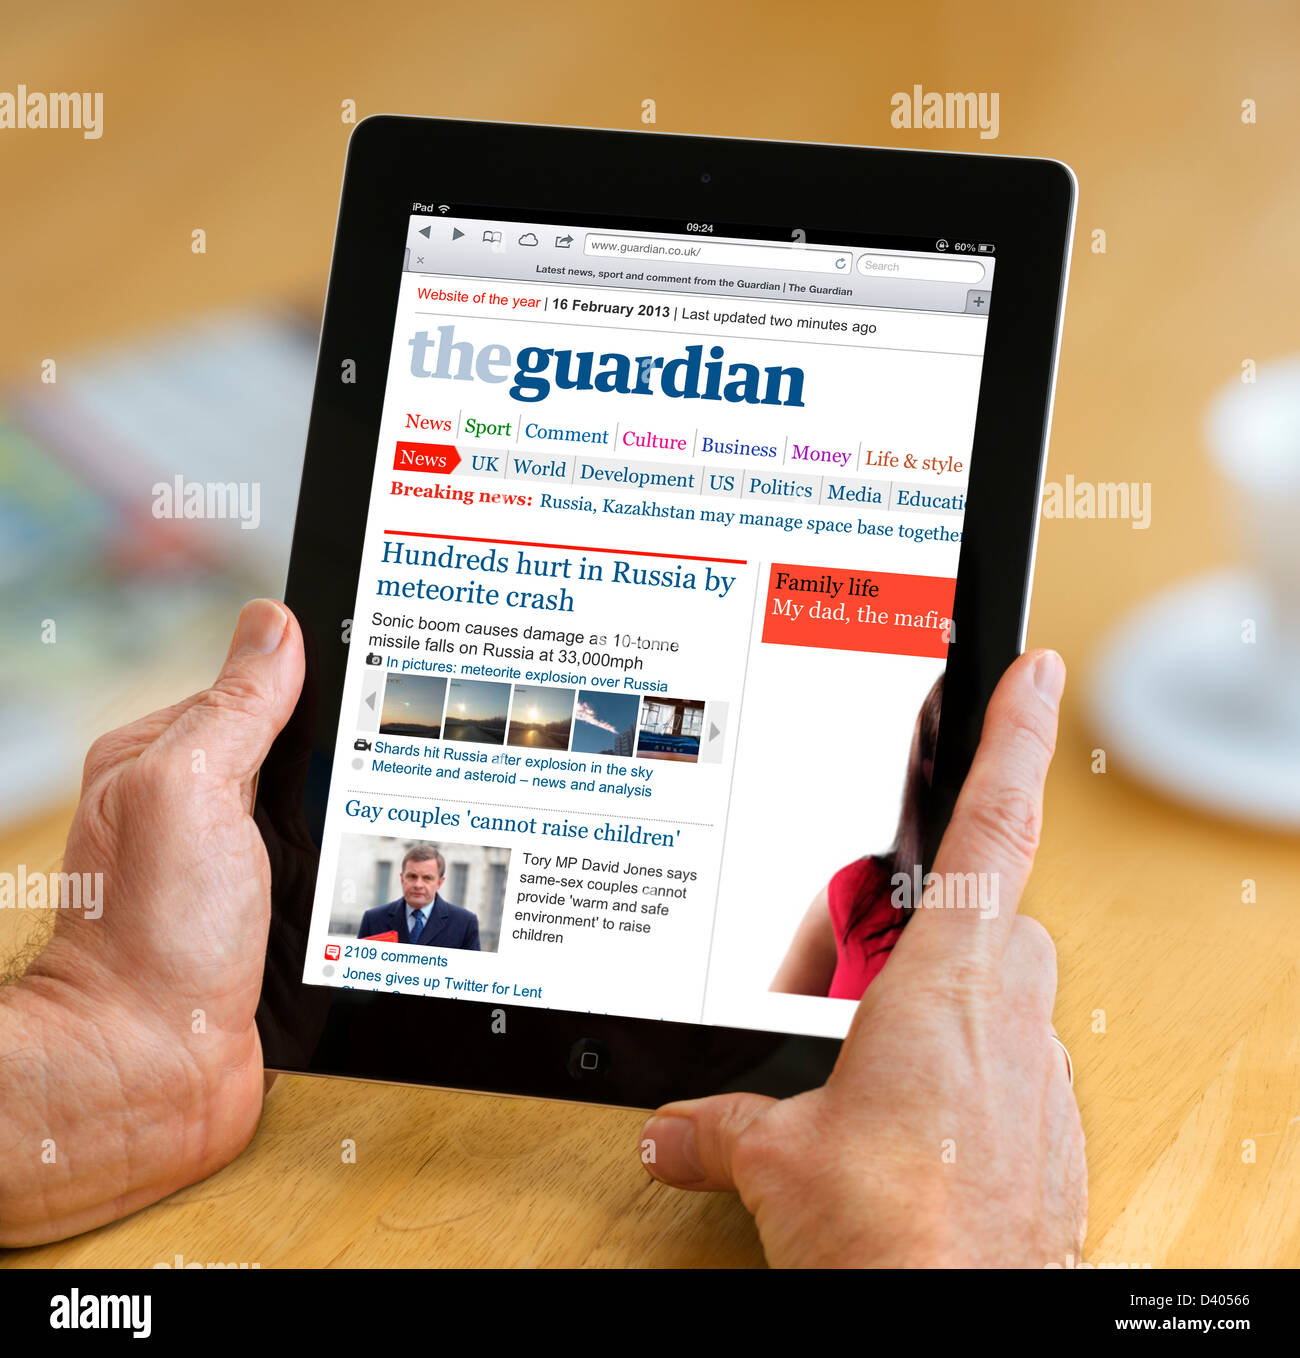 La lecture de l'édition internet du journal Guardian online sur un iPad 4e génération, UK Photo Stock